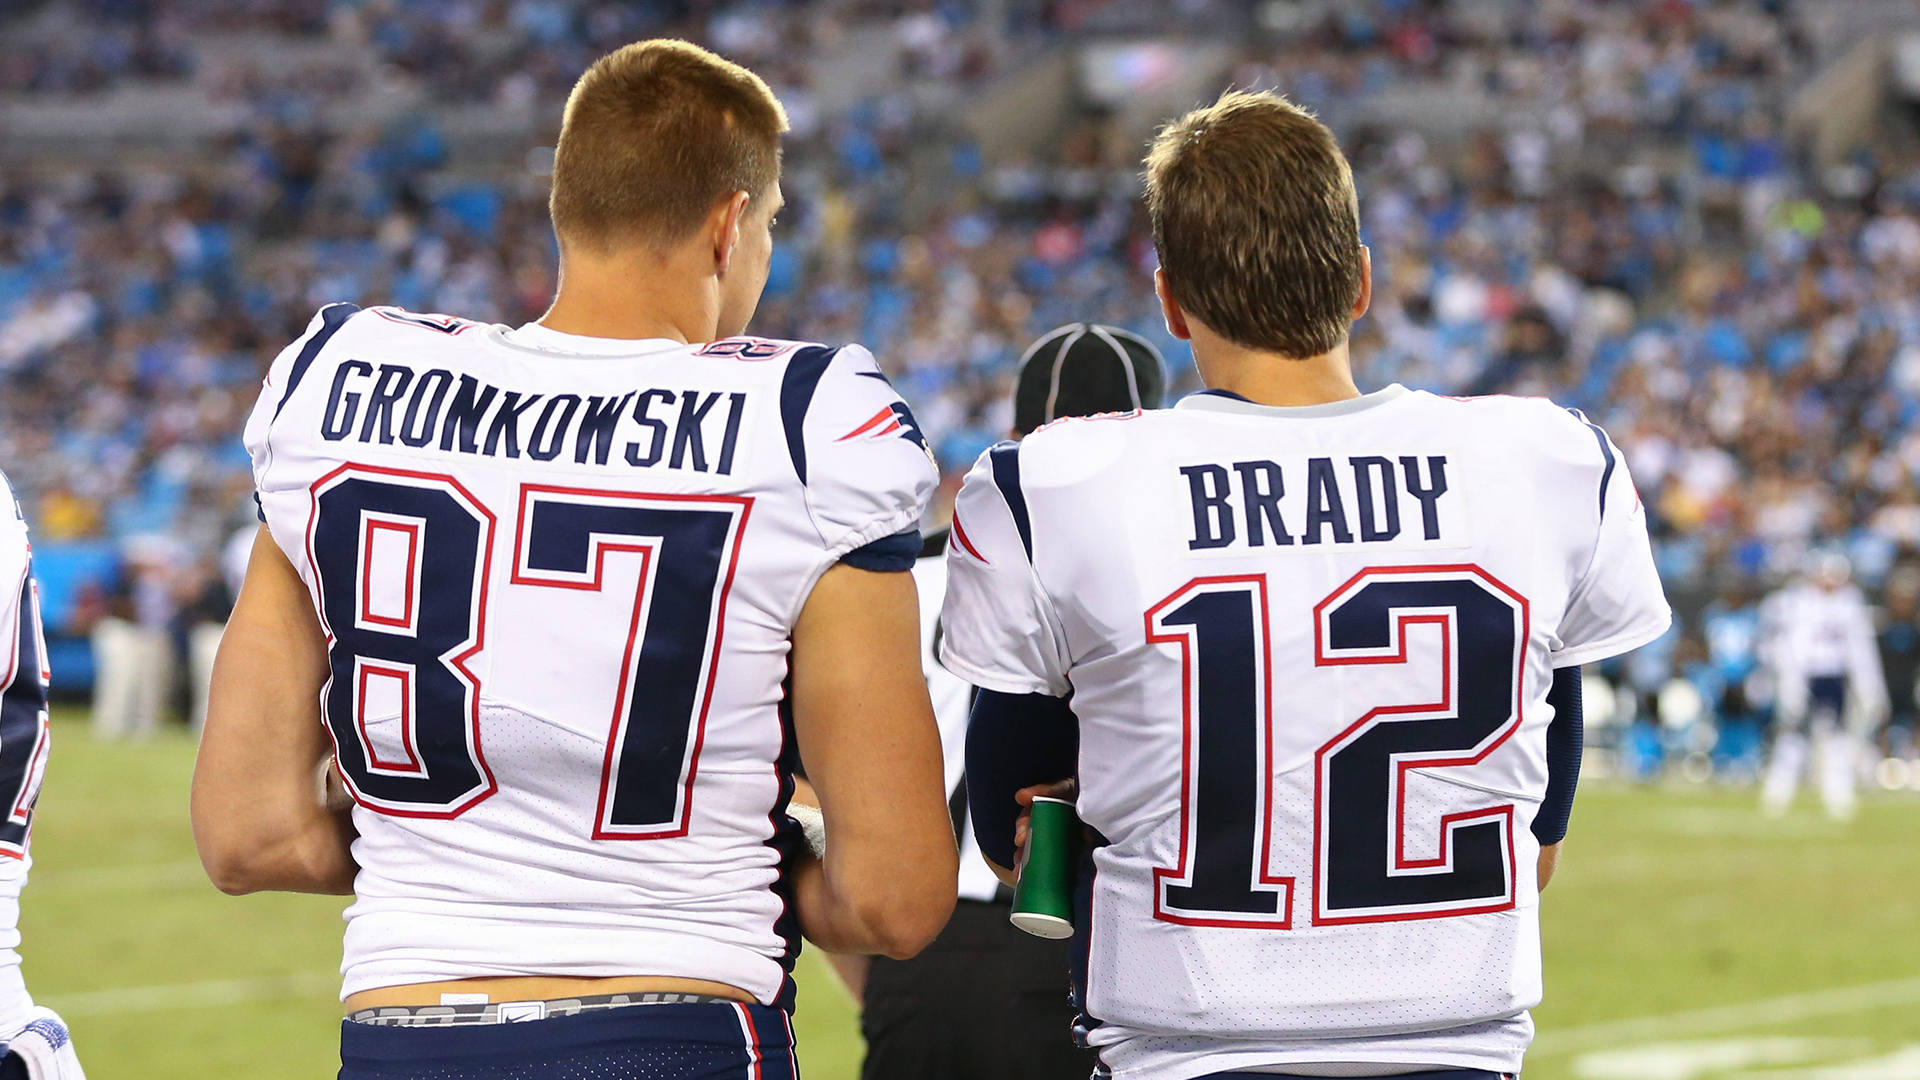 Brady's Bucs Welcome Gronkowski After Trade With Pats